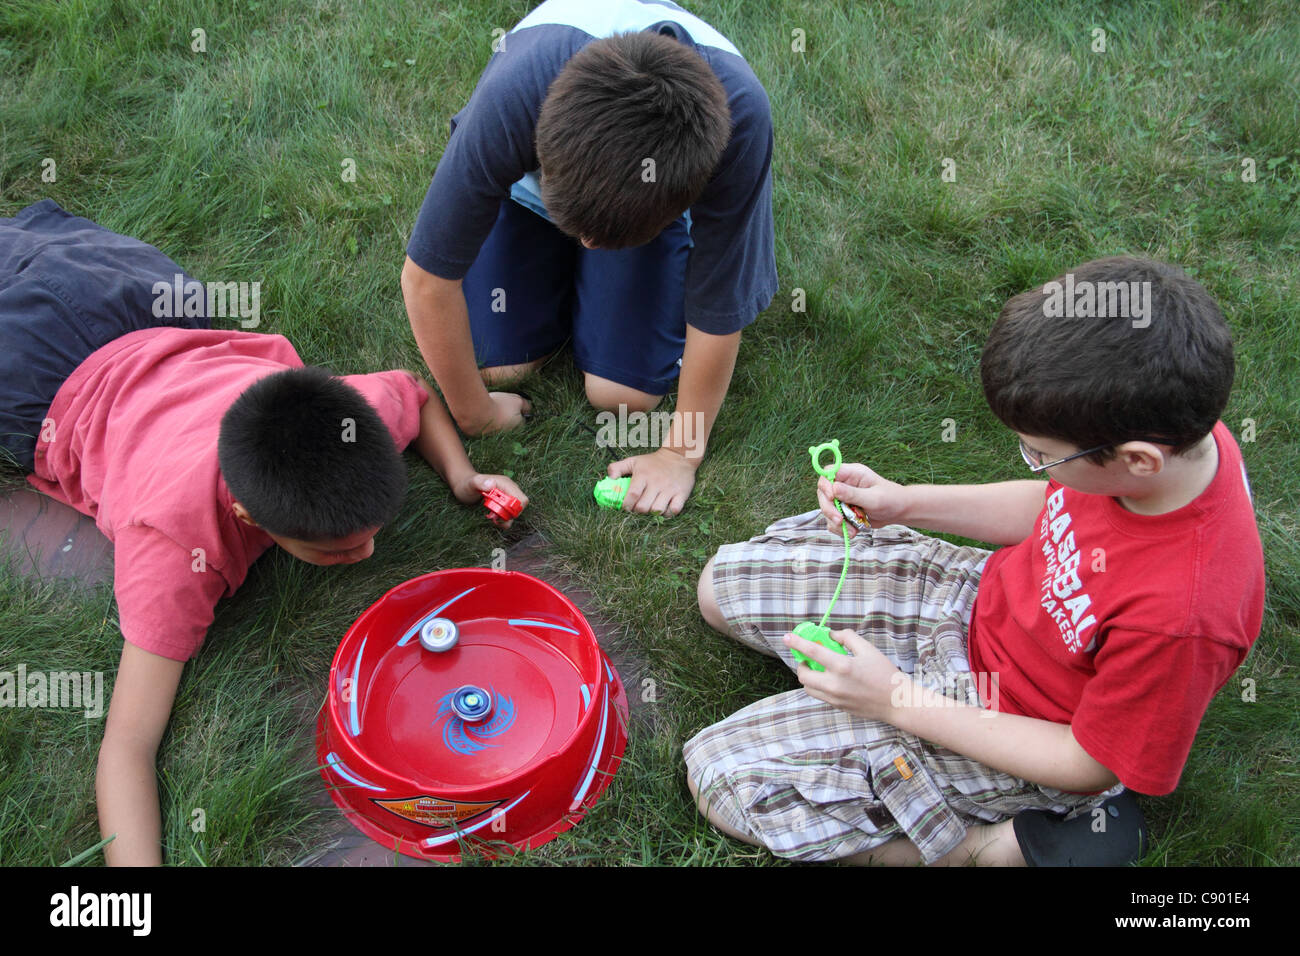 Bey Blade fun three boys 9-10 playing game friendship - Stock Image